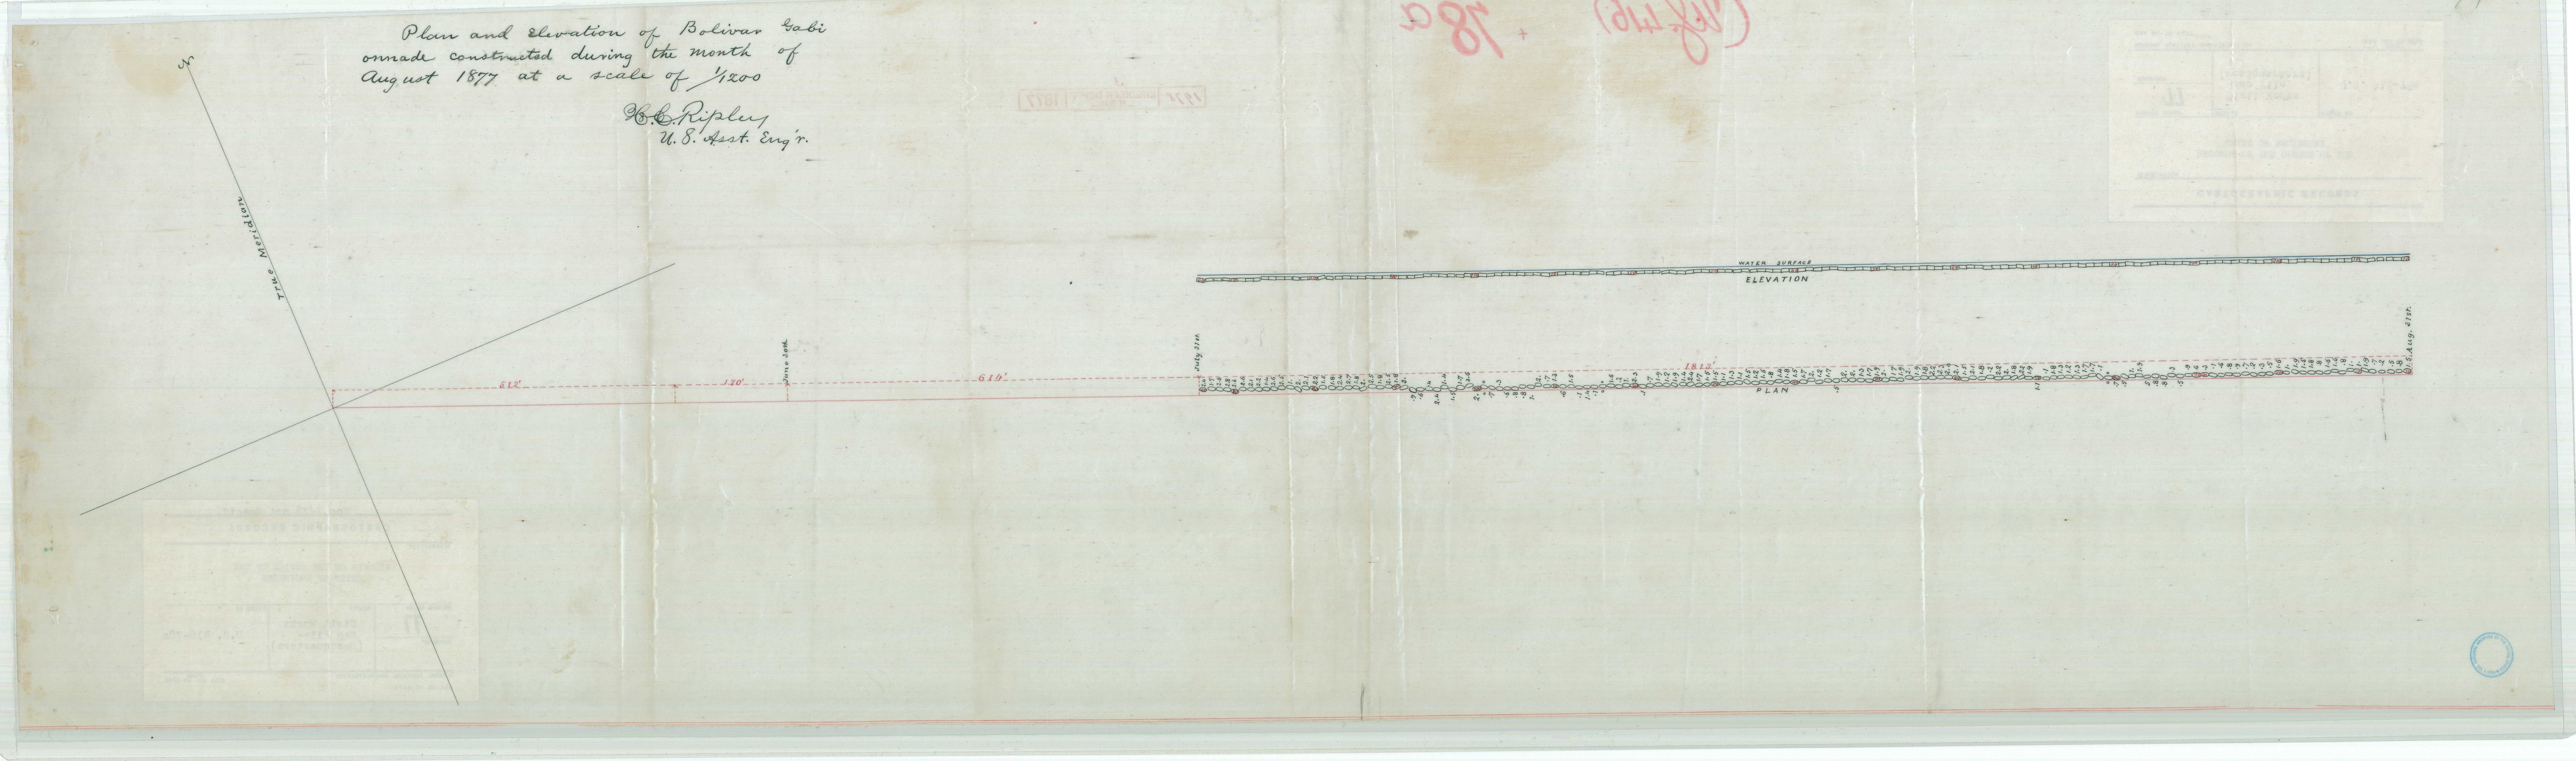 Plan and elevation of Bolivar Gabionade during the month of August 1877.